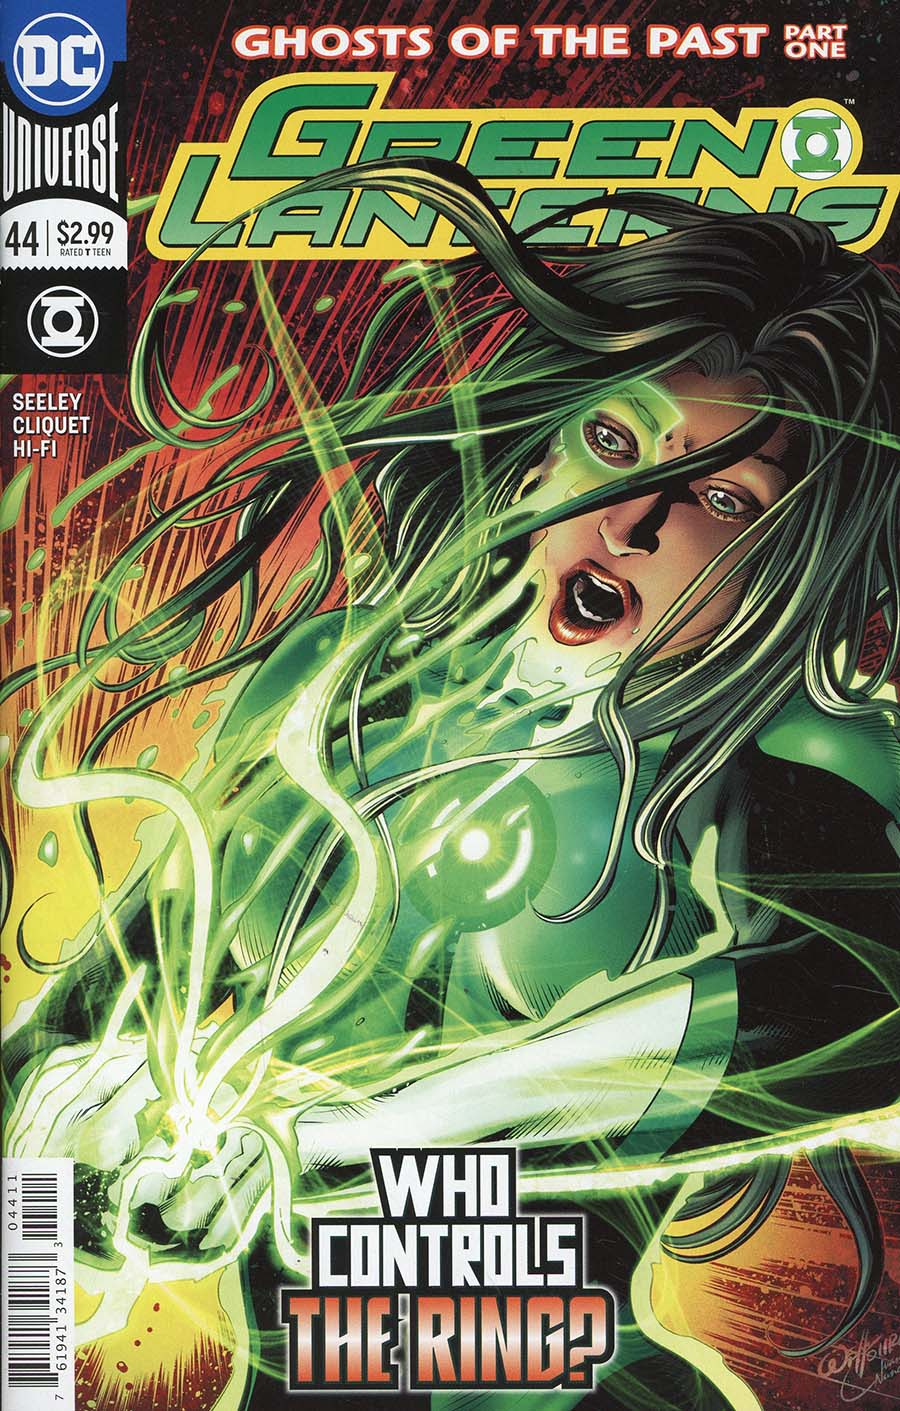 Green Lanterns 44 - Ghosts of the Past 1